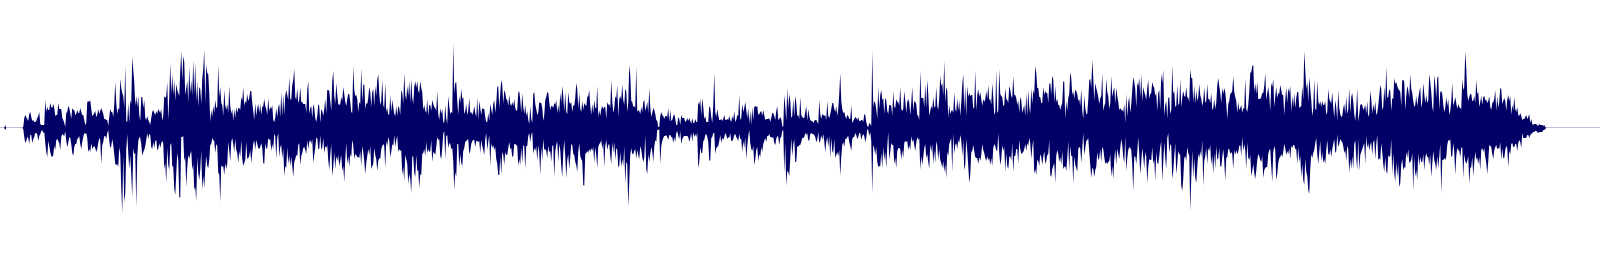 waveform of track #129689